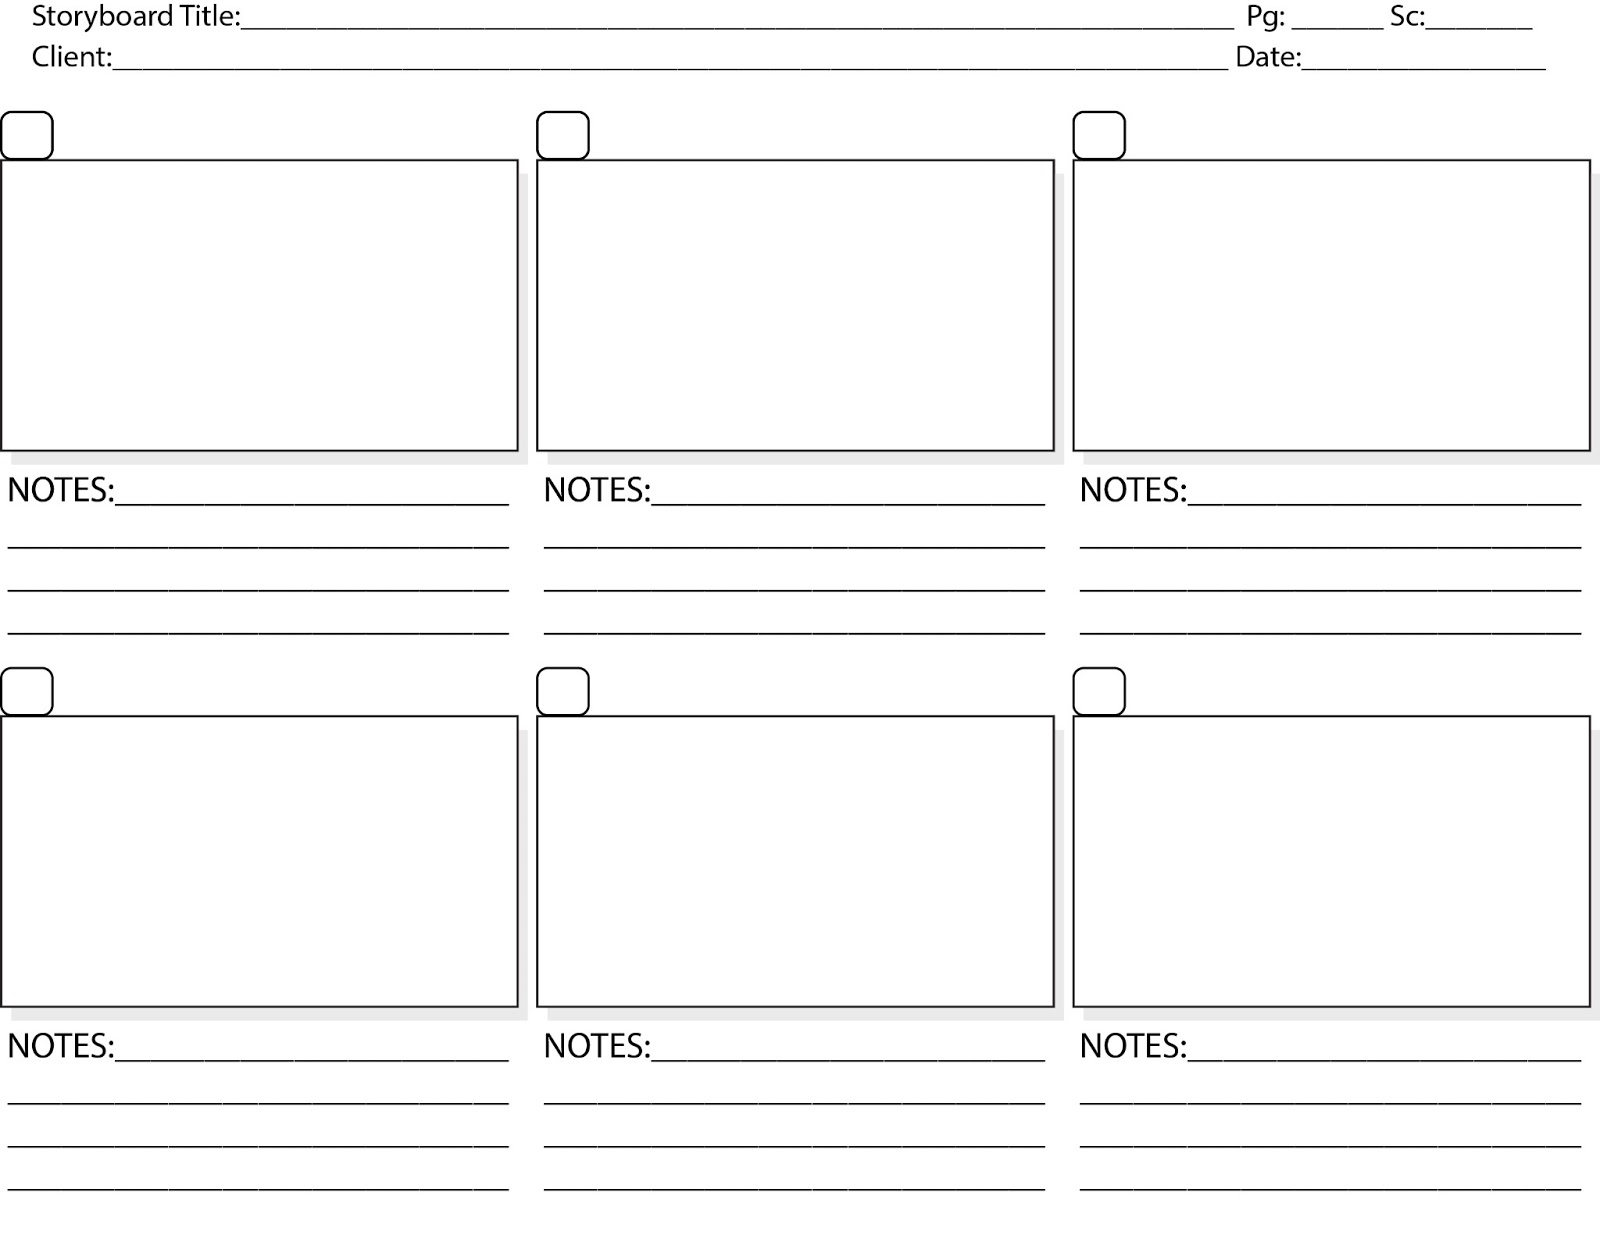 the process of storyboarding